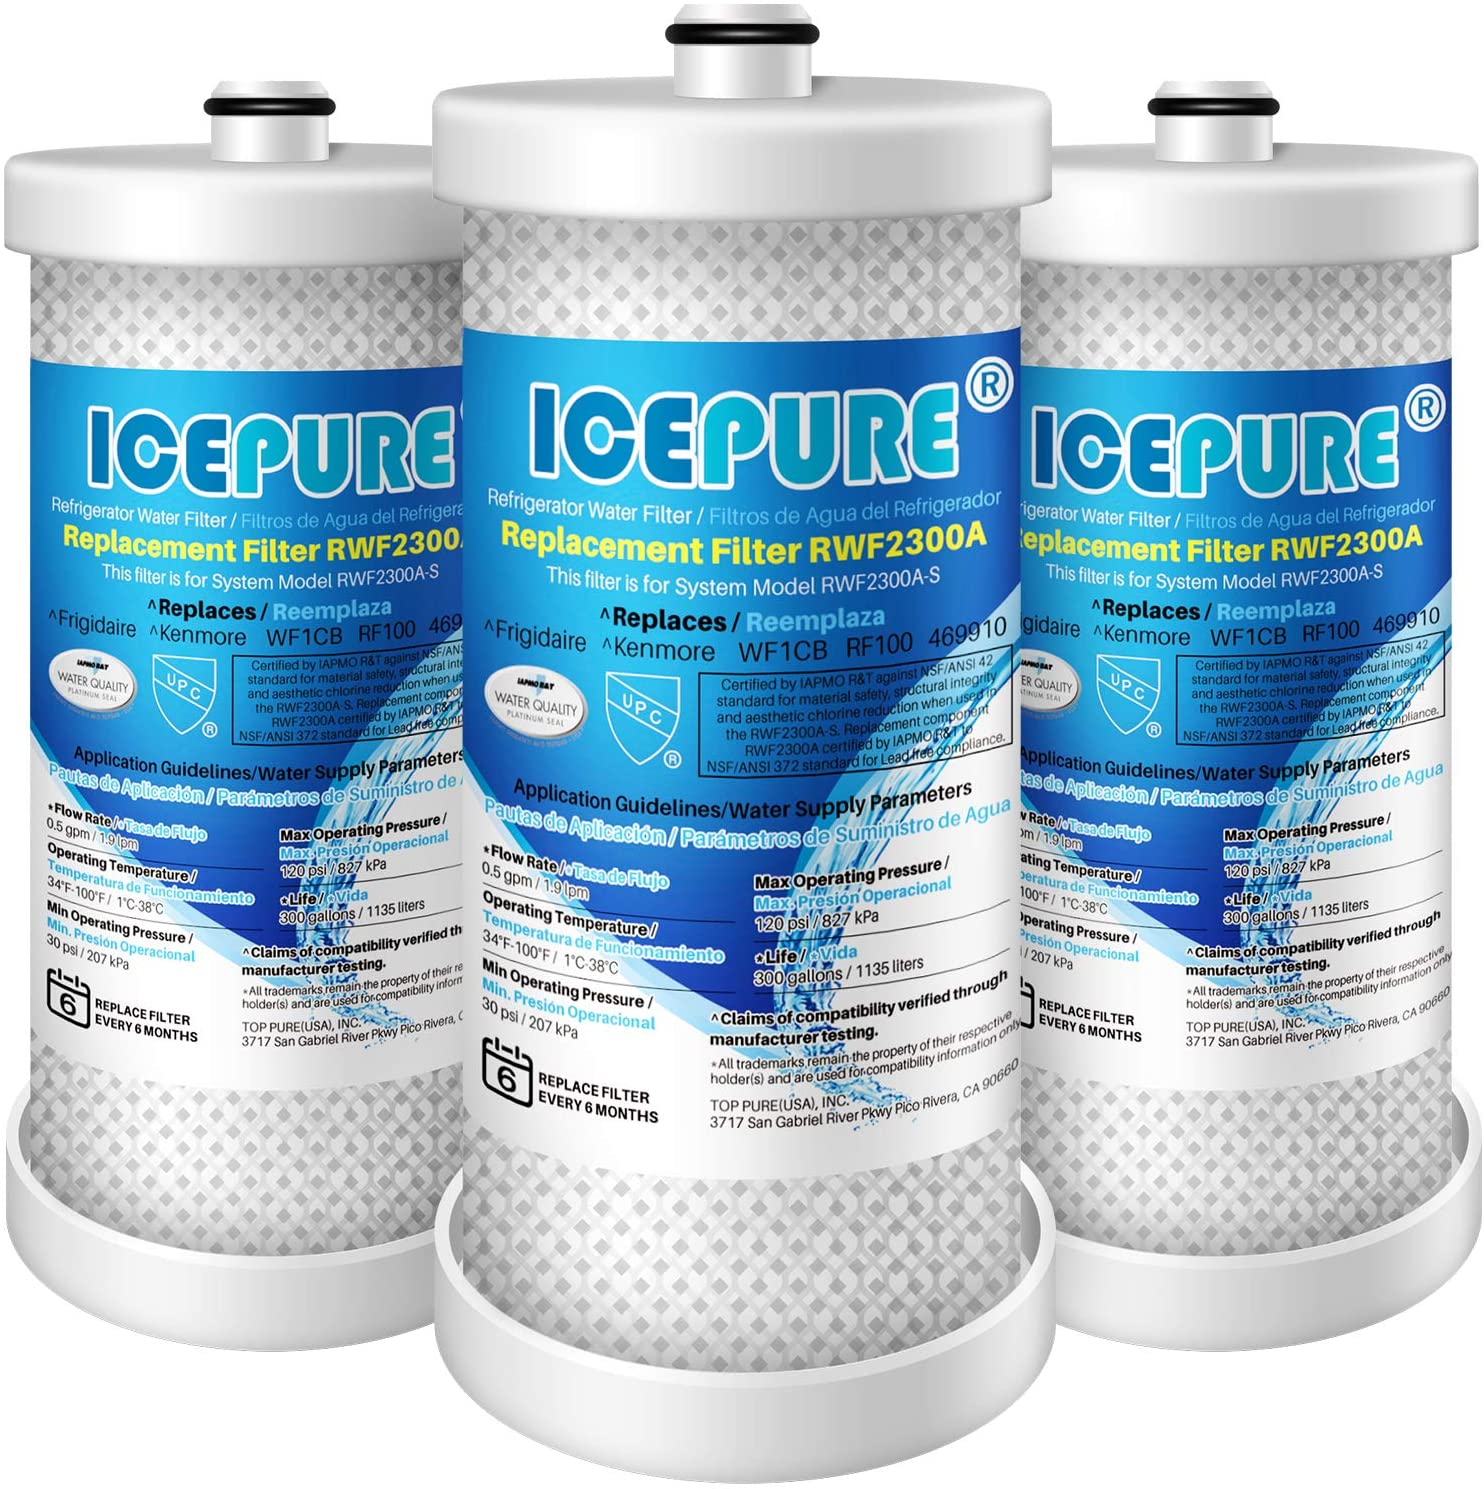 ICEPURE WF1CB Refrigerator water filter Replacement For Frigidaire PureSource WF1CB,WFCB, RG100, NGRG2000, WF284, Kenmore 9910, 469906, 469910,3PACK